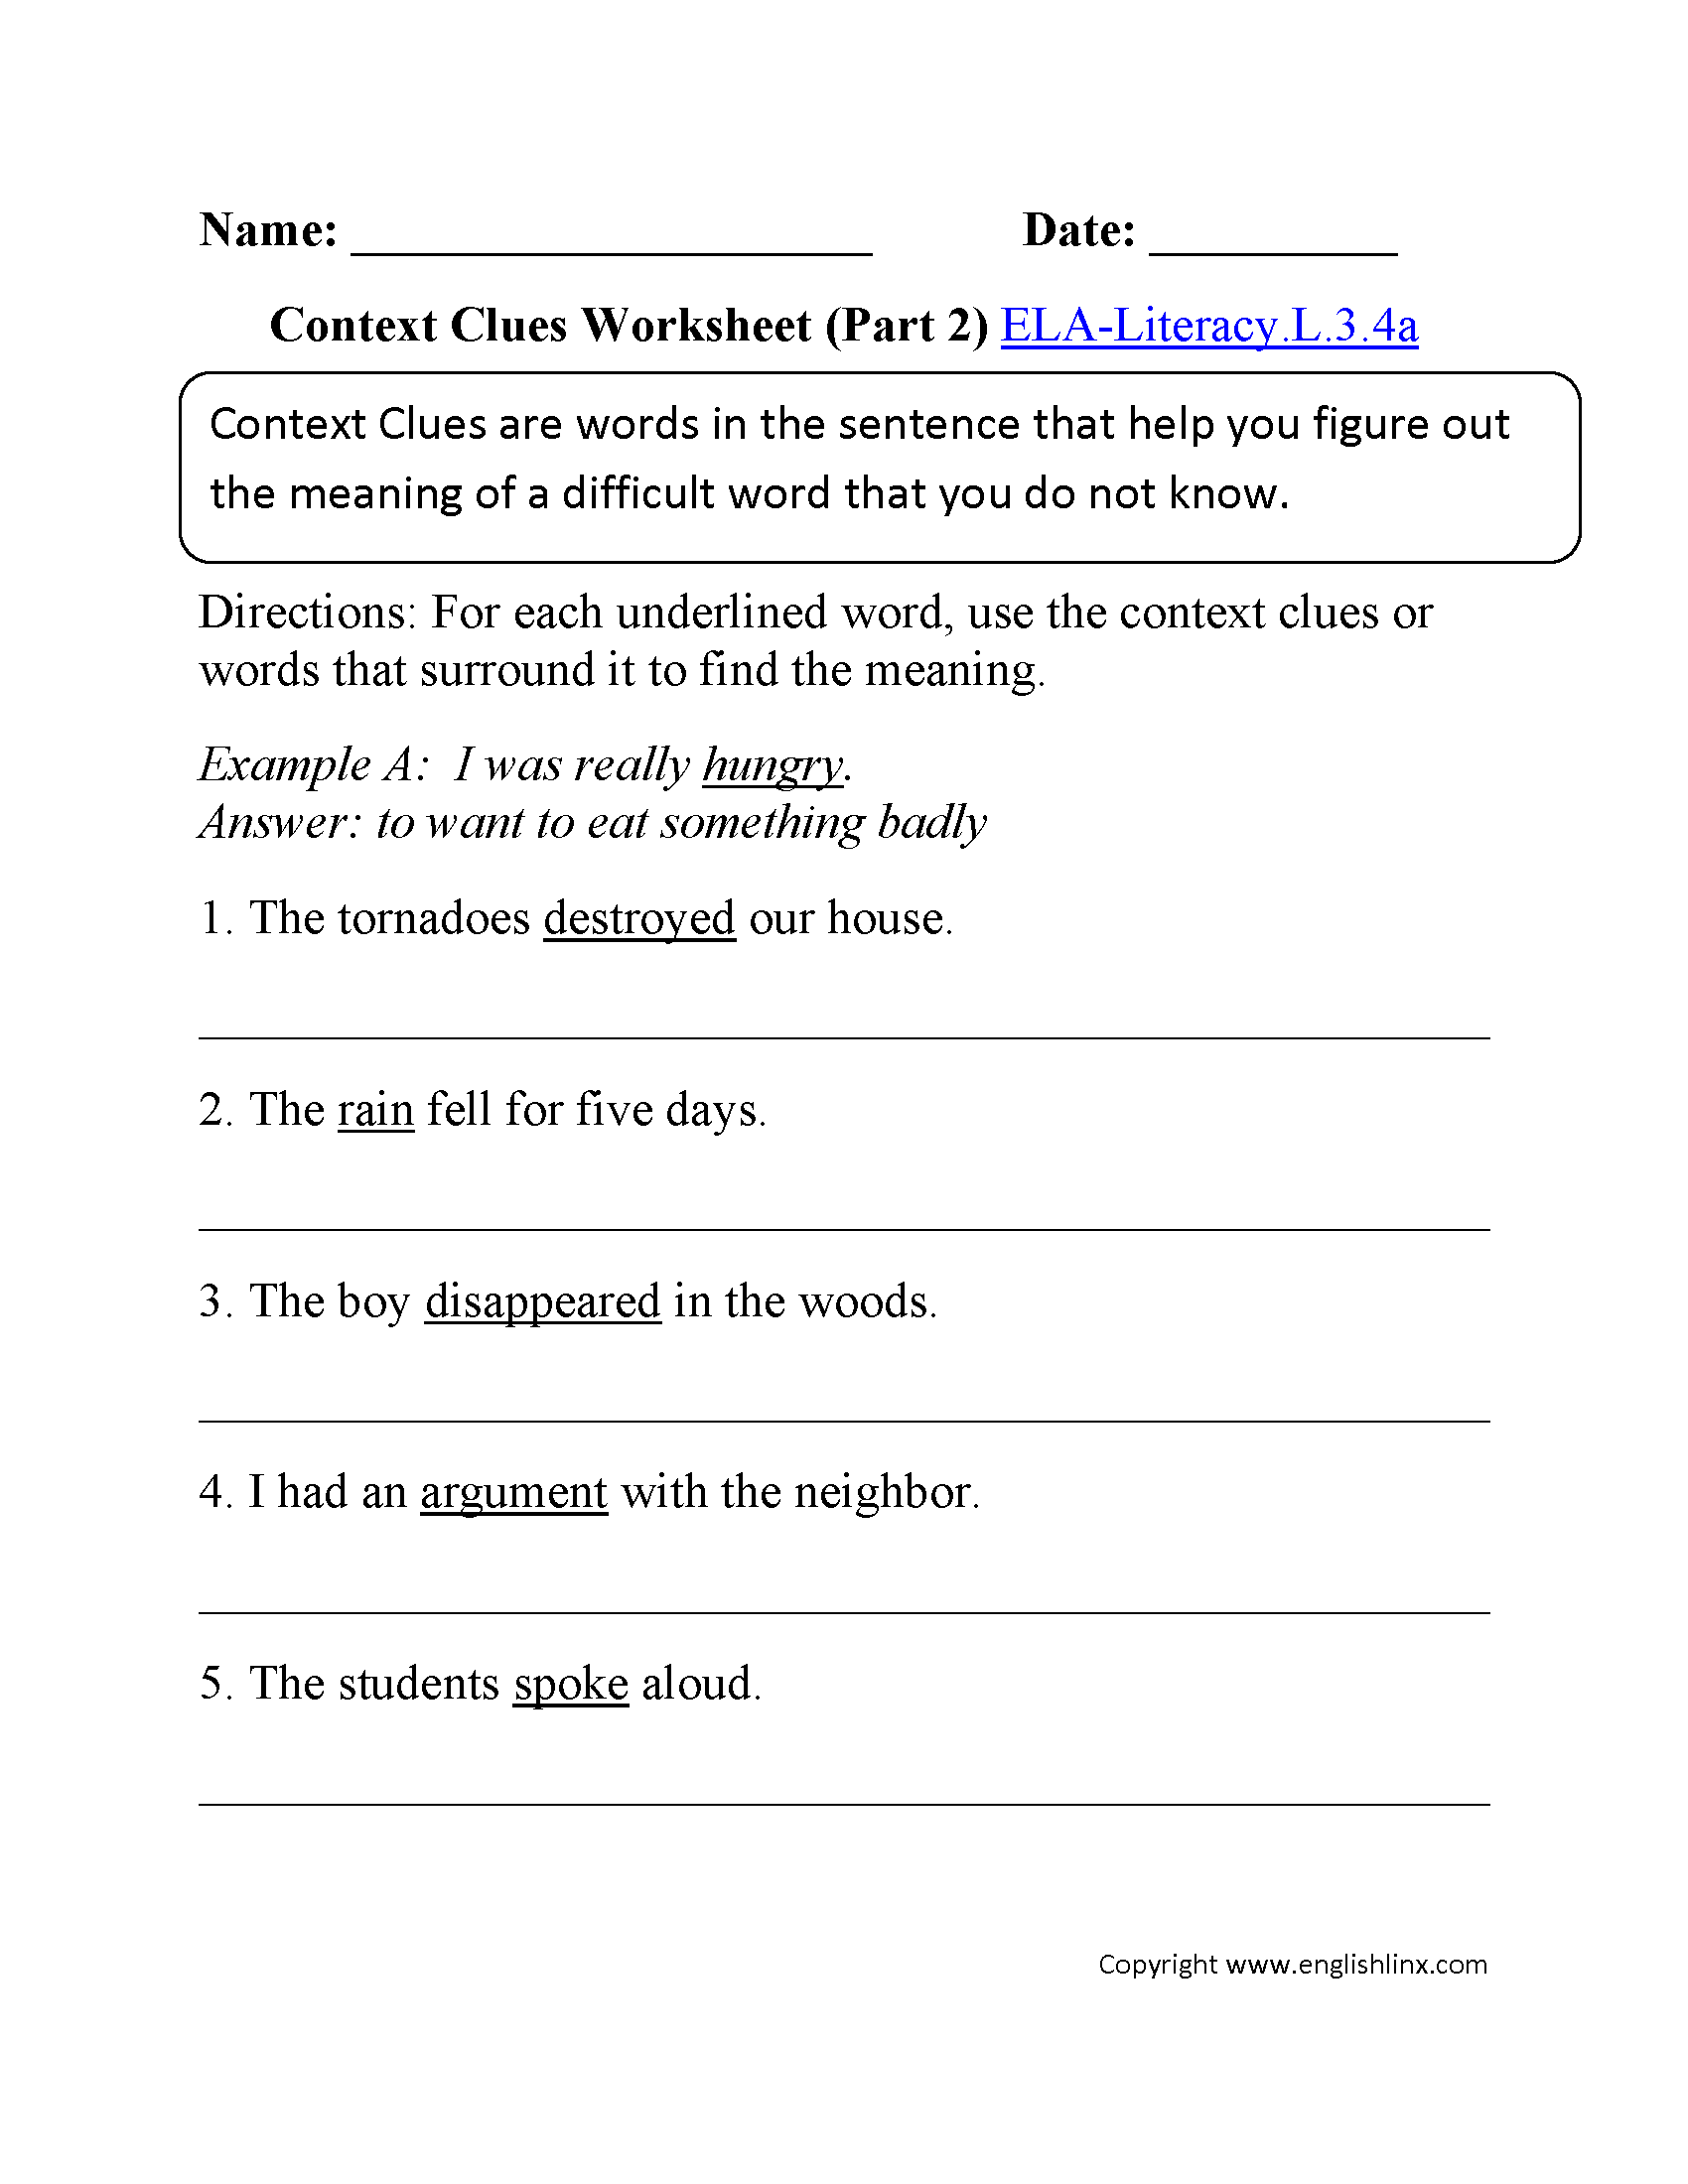 Context Clues Worksheet 2 ELA-Literacy.L.3.4a Language Worksheet